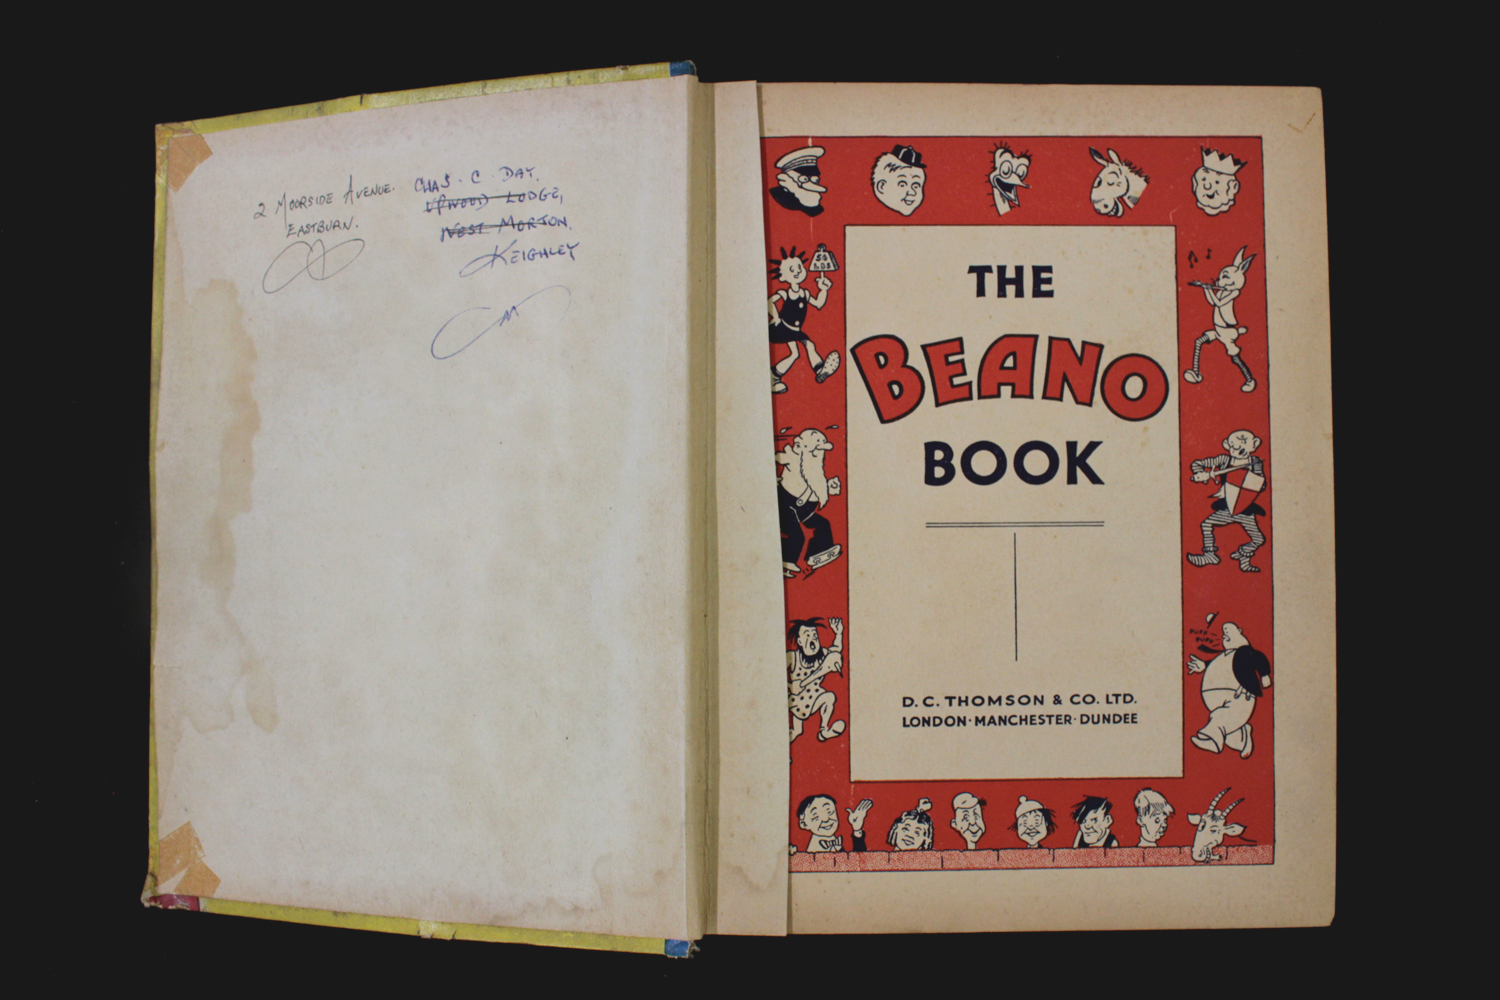 THE BEANO BOOK [No 1 Annual for 1940], London, Manchester and Dundee, D C Thomson & Co, [1939], 128p - Image 4 of 16